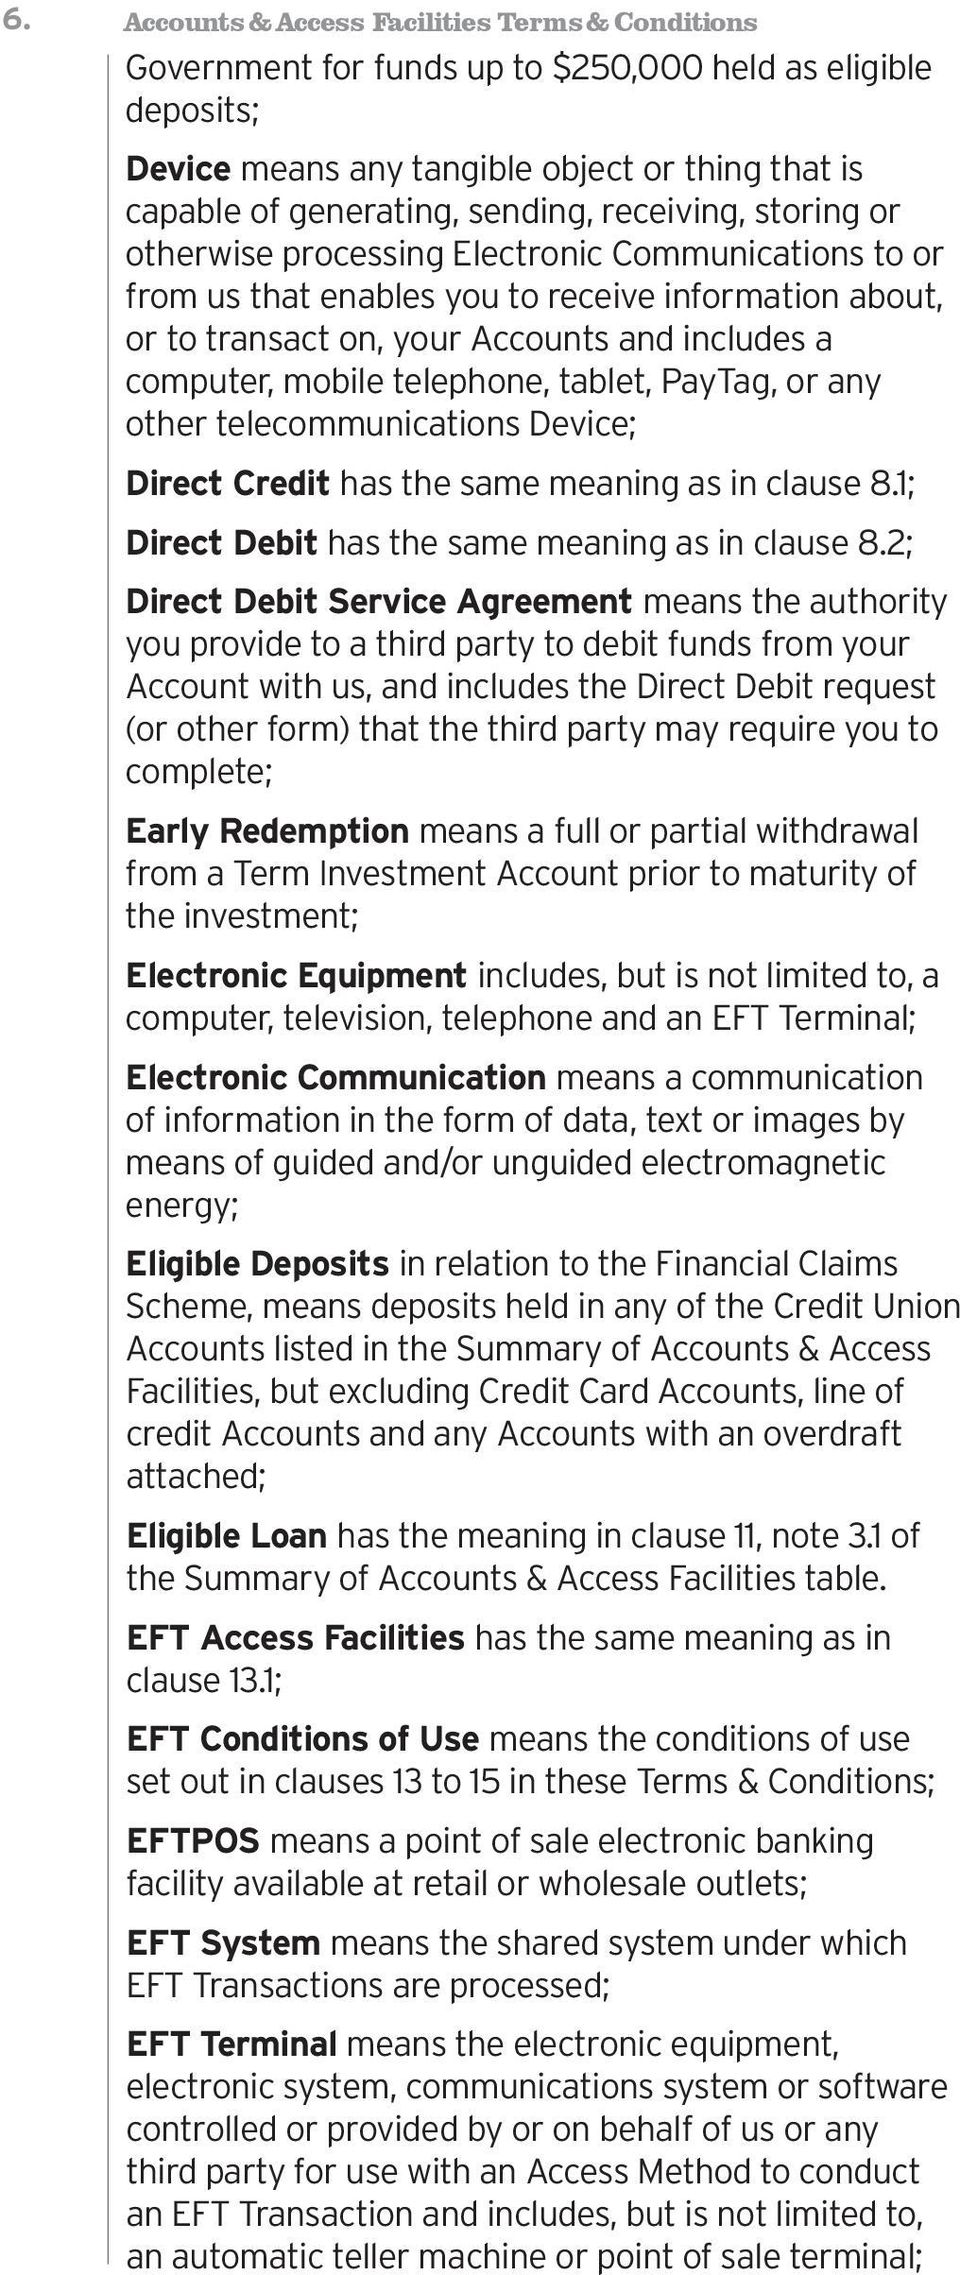 telephone, tablet, PayTag, or any other telecommunications Device; Direct Credit has the same meaning as in clause 8.1; Direct Debit has the same meaning as in clause 8.